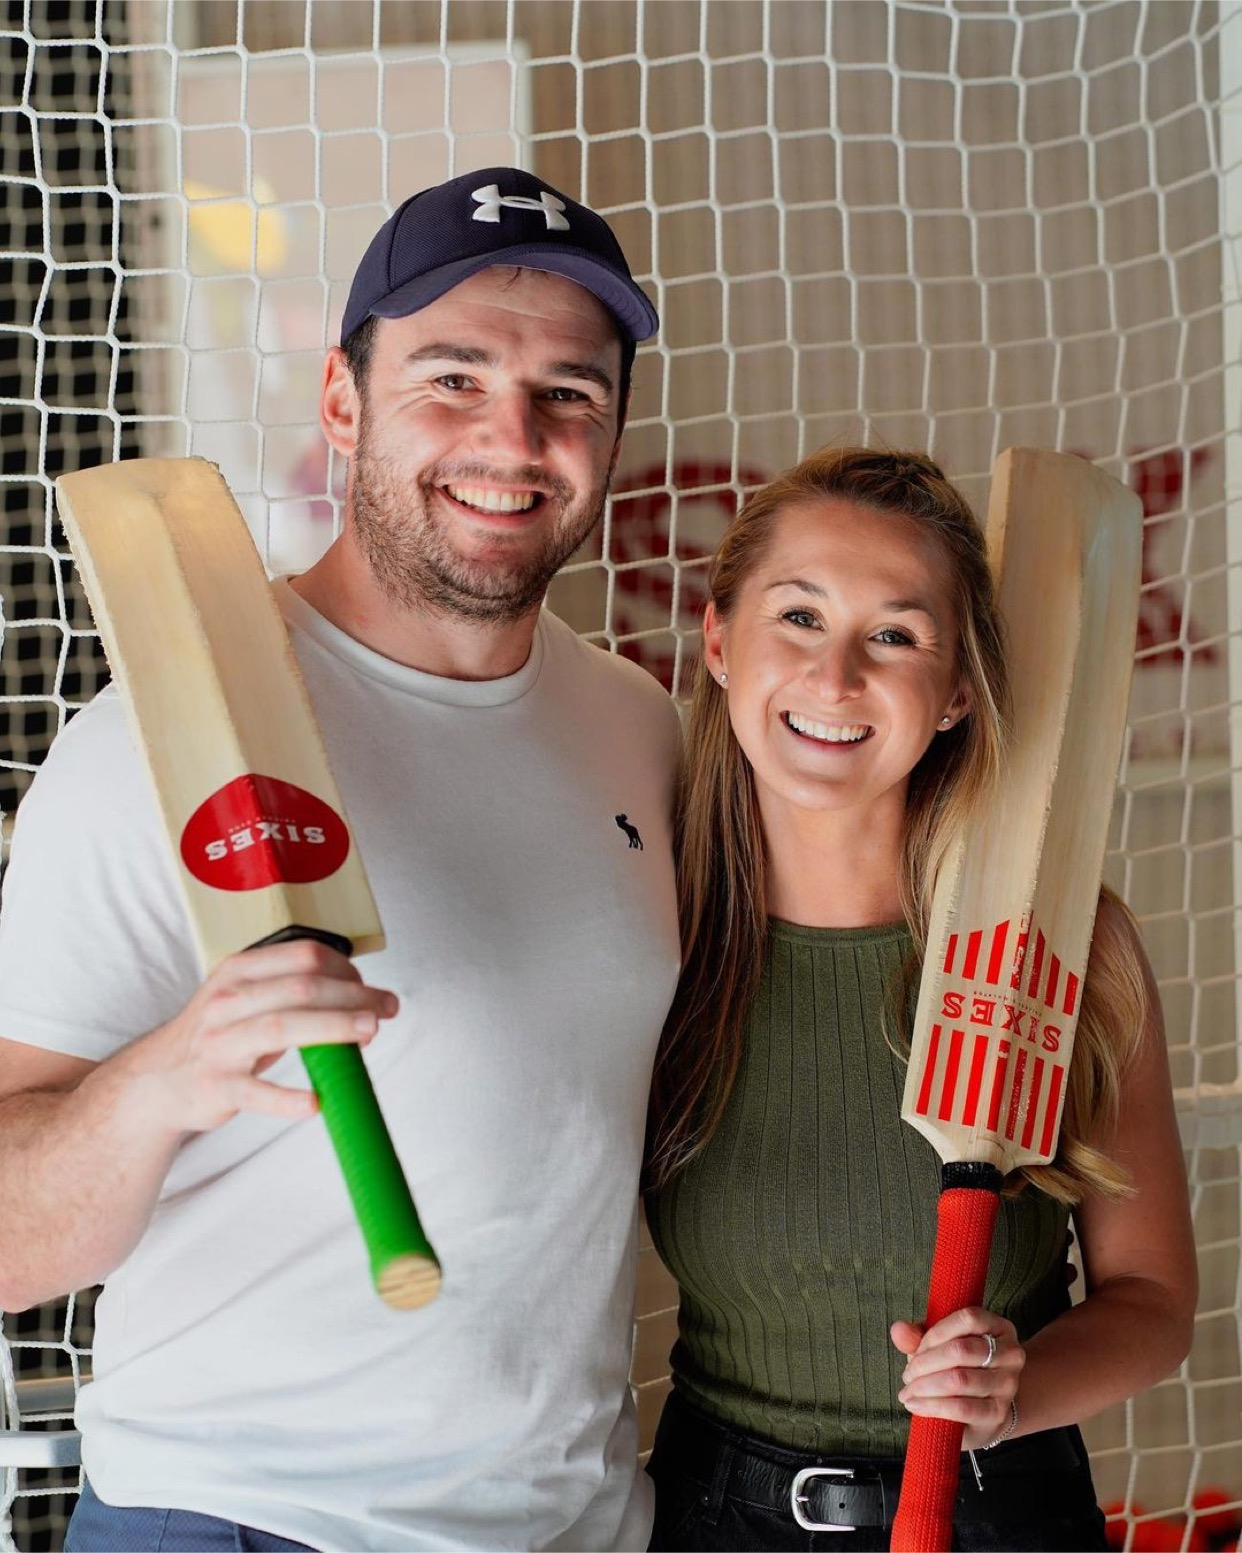 Social Cricket comes to Manchester with the opening of Sixes Clubhouse, The Manc